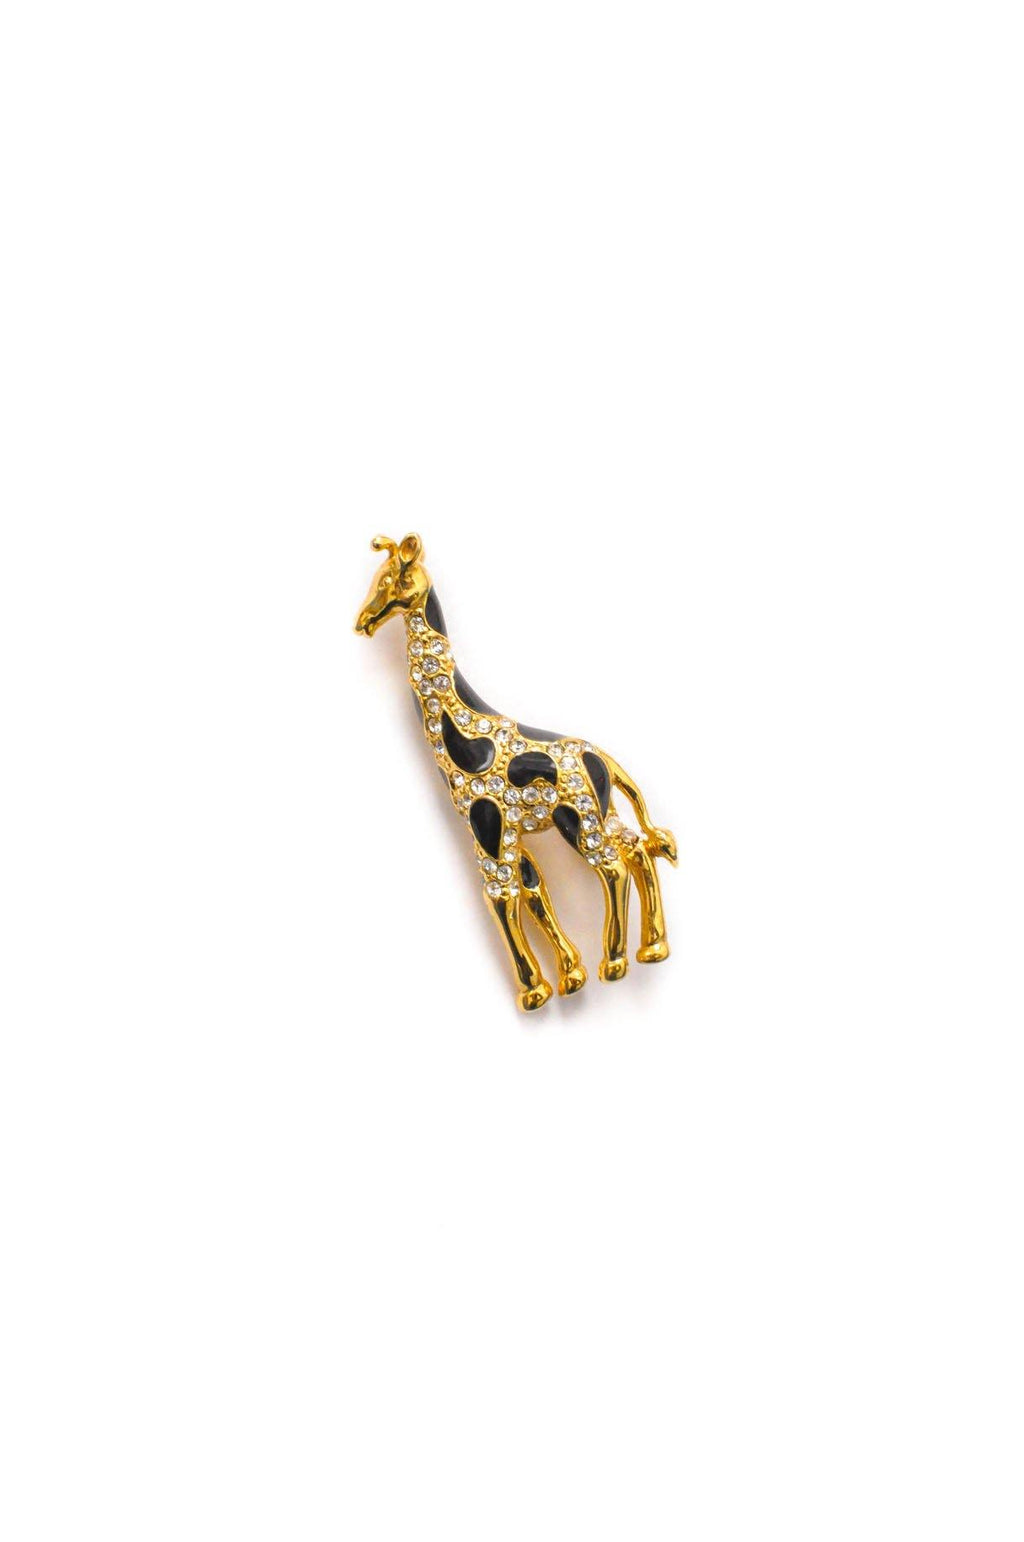 Mini Giraffe Brooch